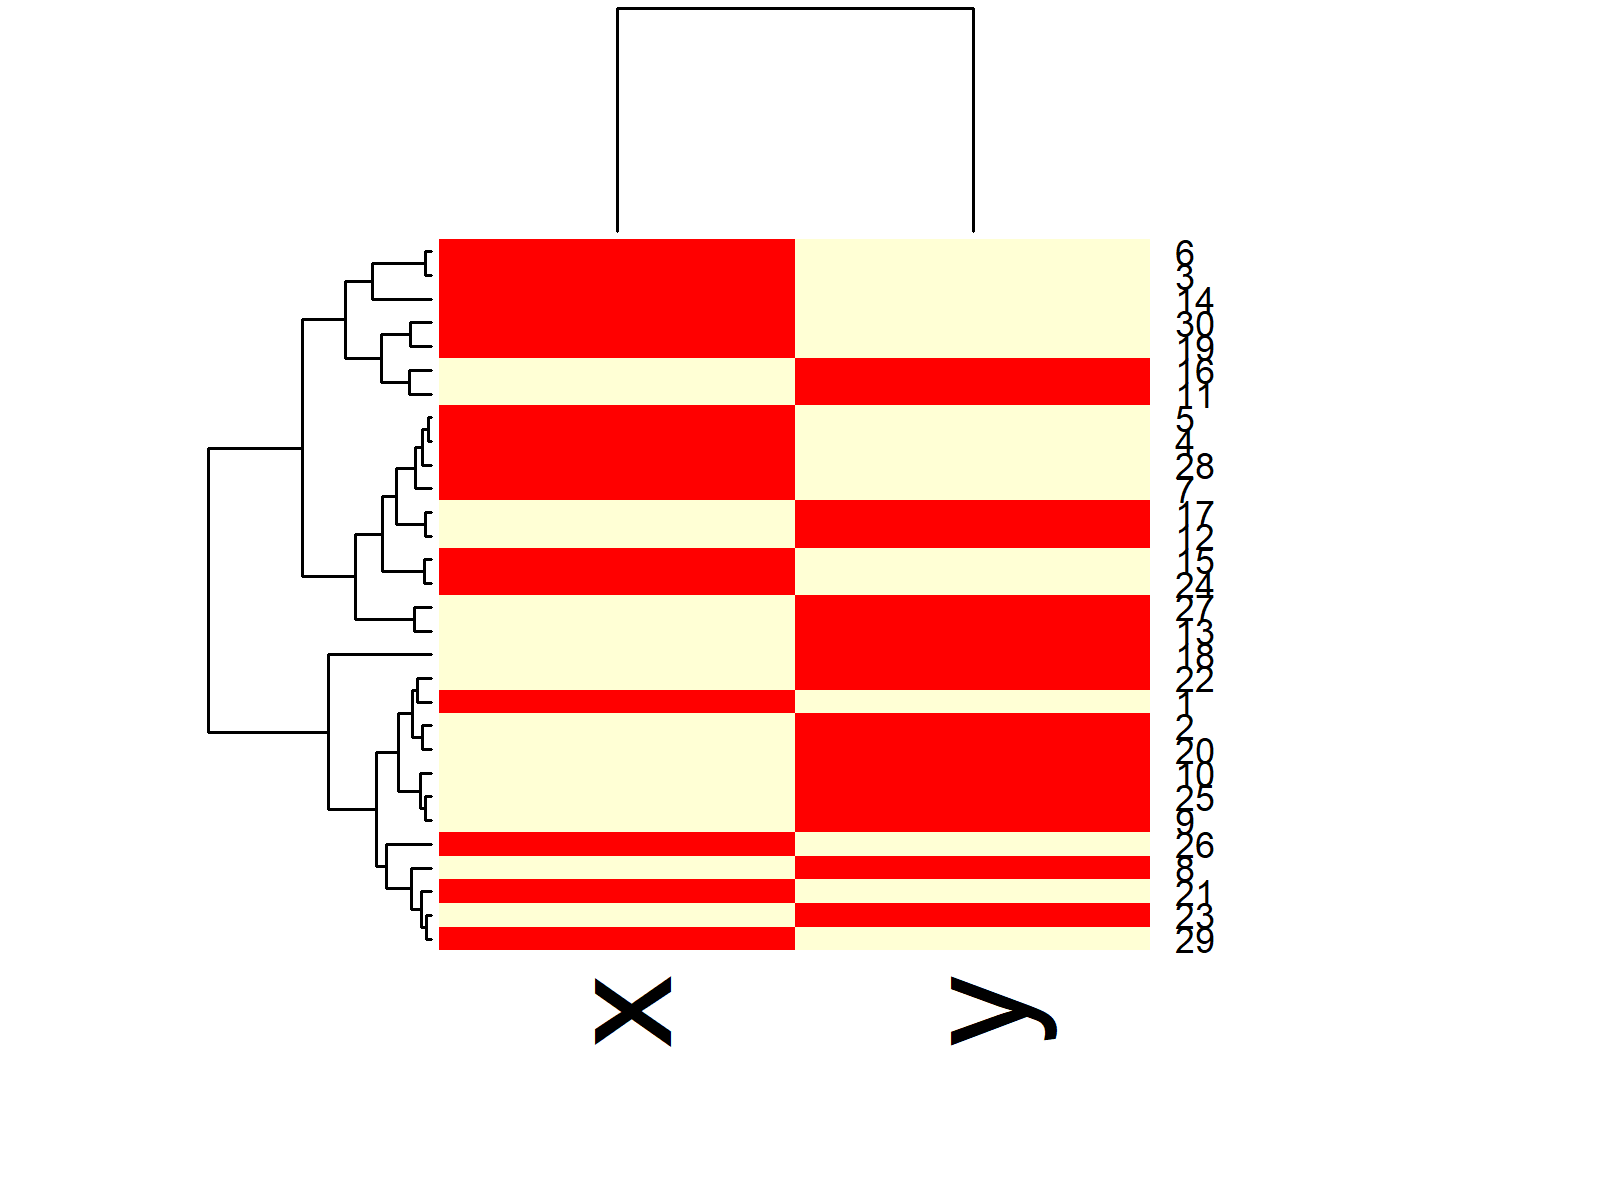 Example Heatmap in R